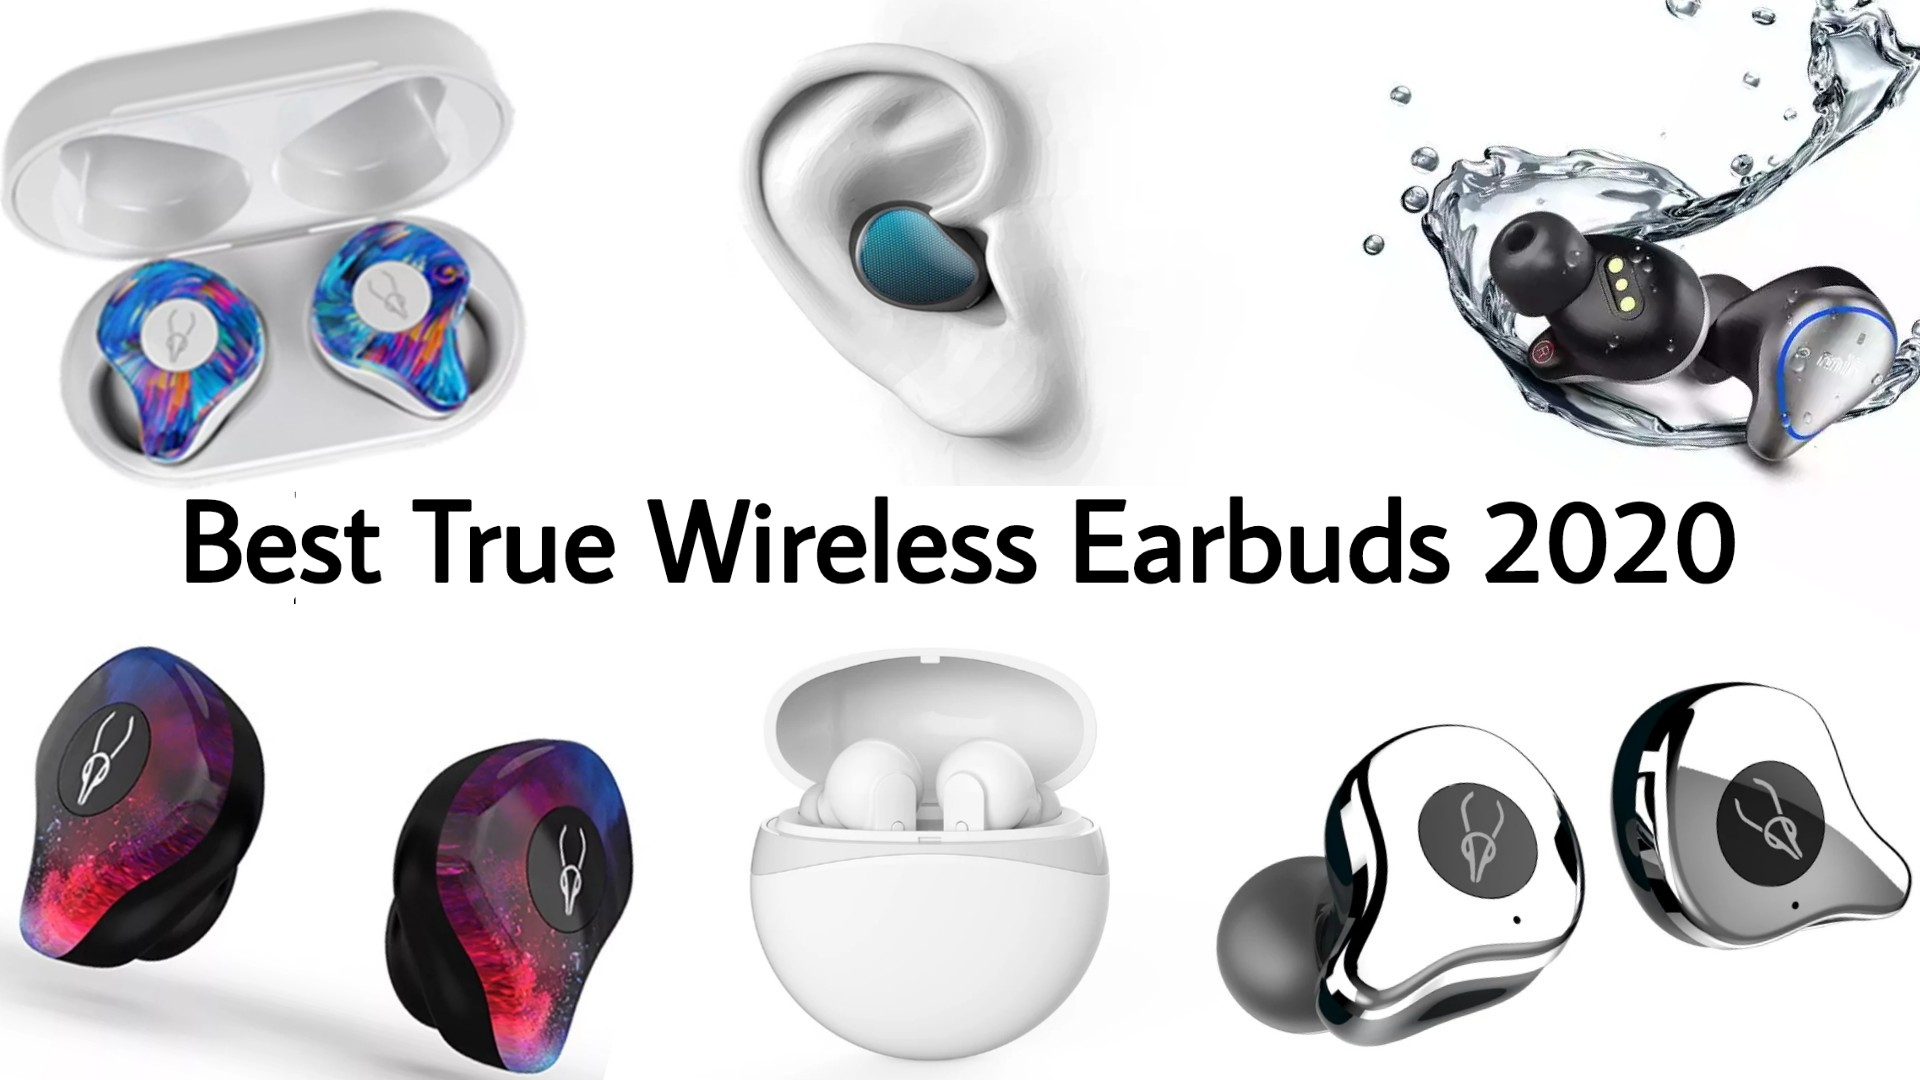 Top 10 True Wireless Earphones 2020 Best Bluetooth 5 0 Earbuds